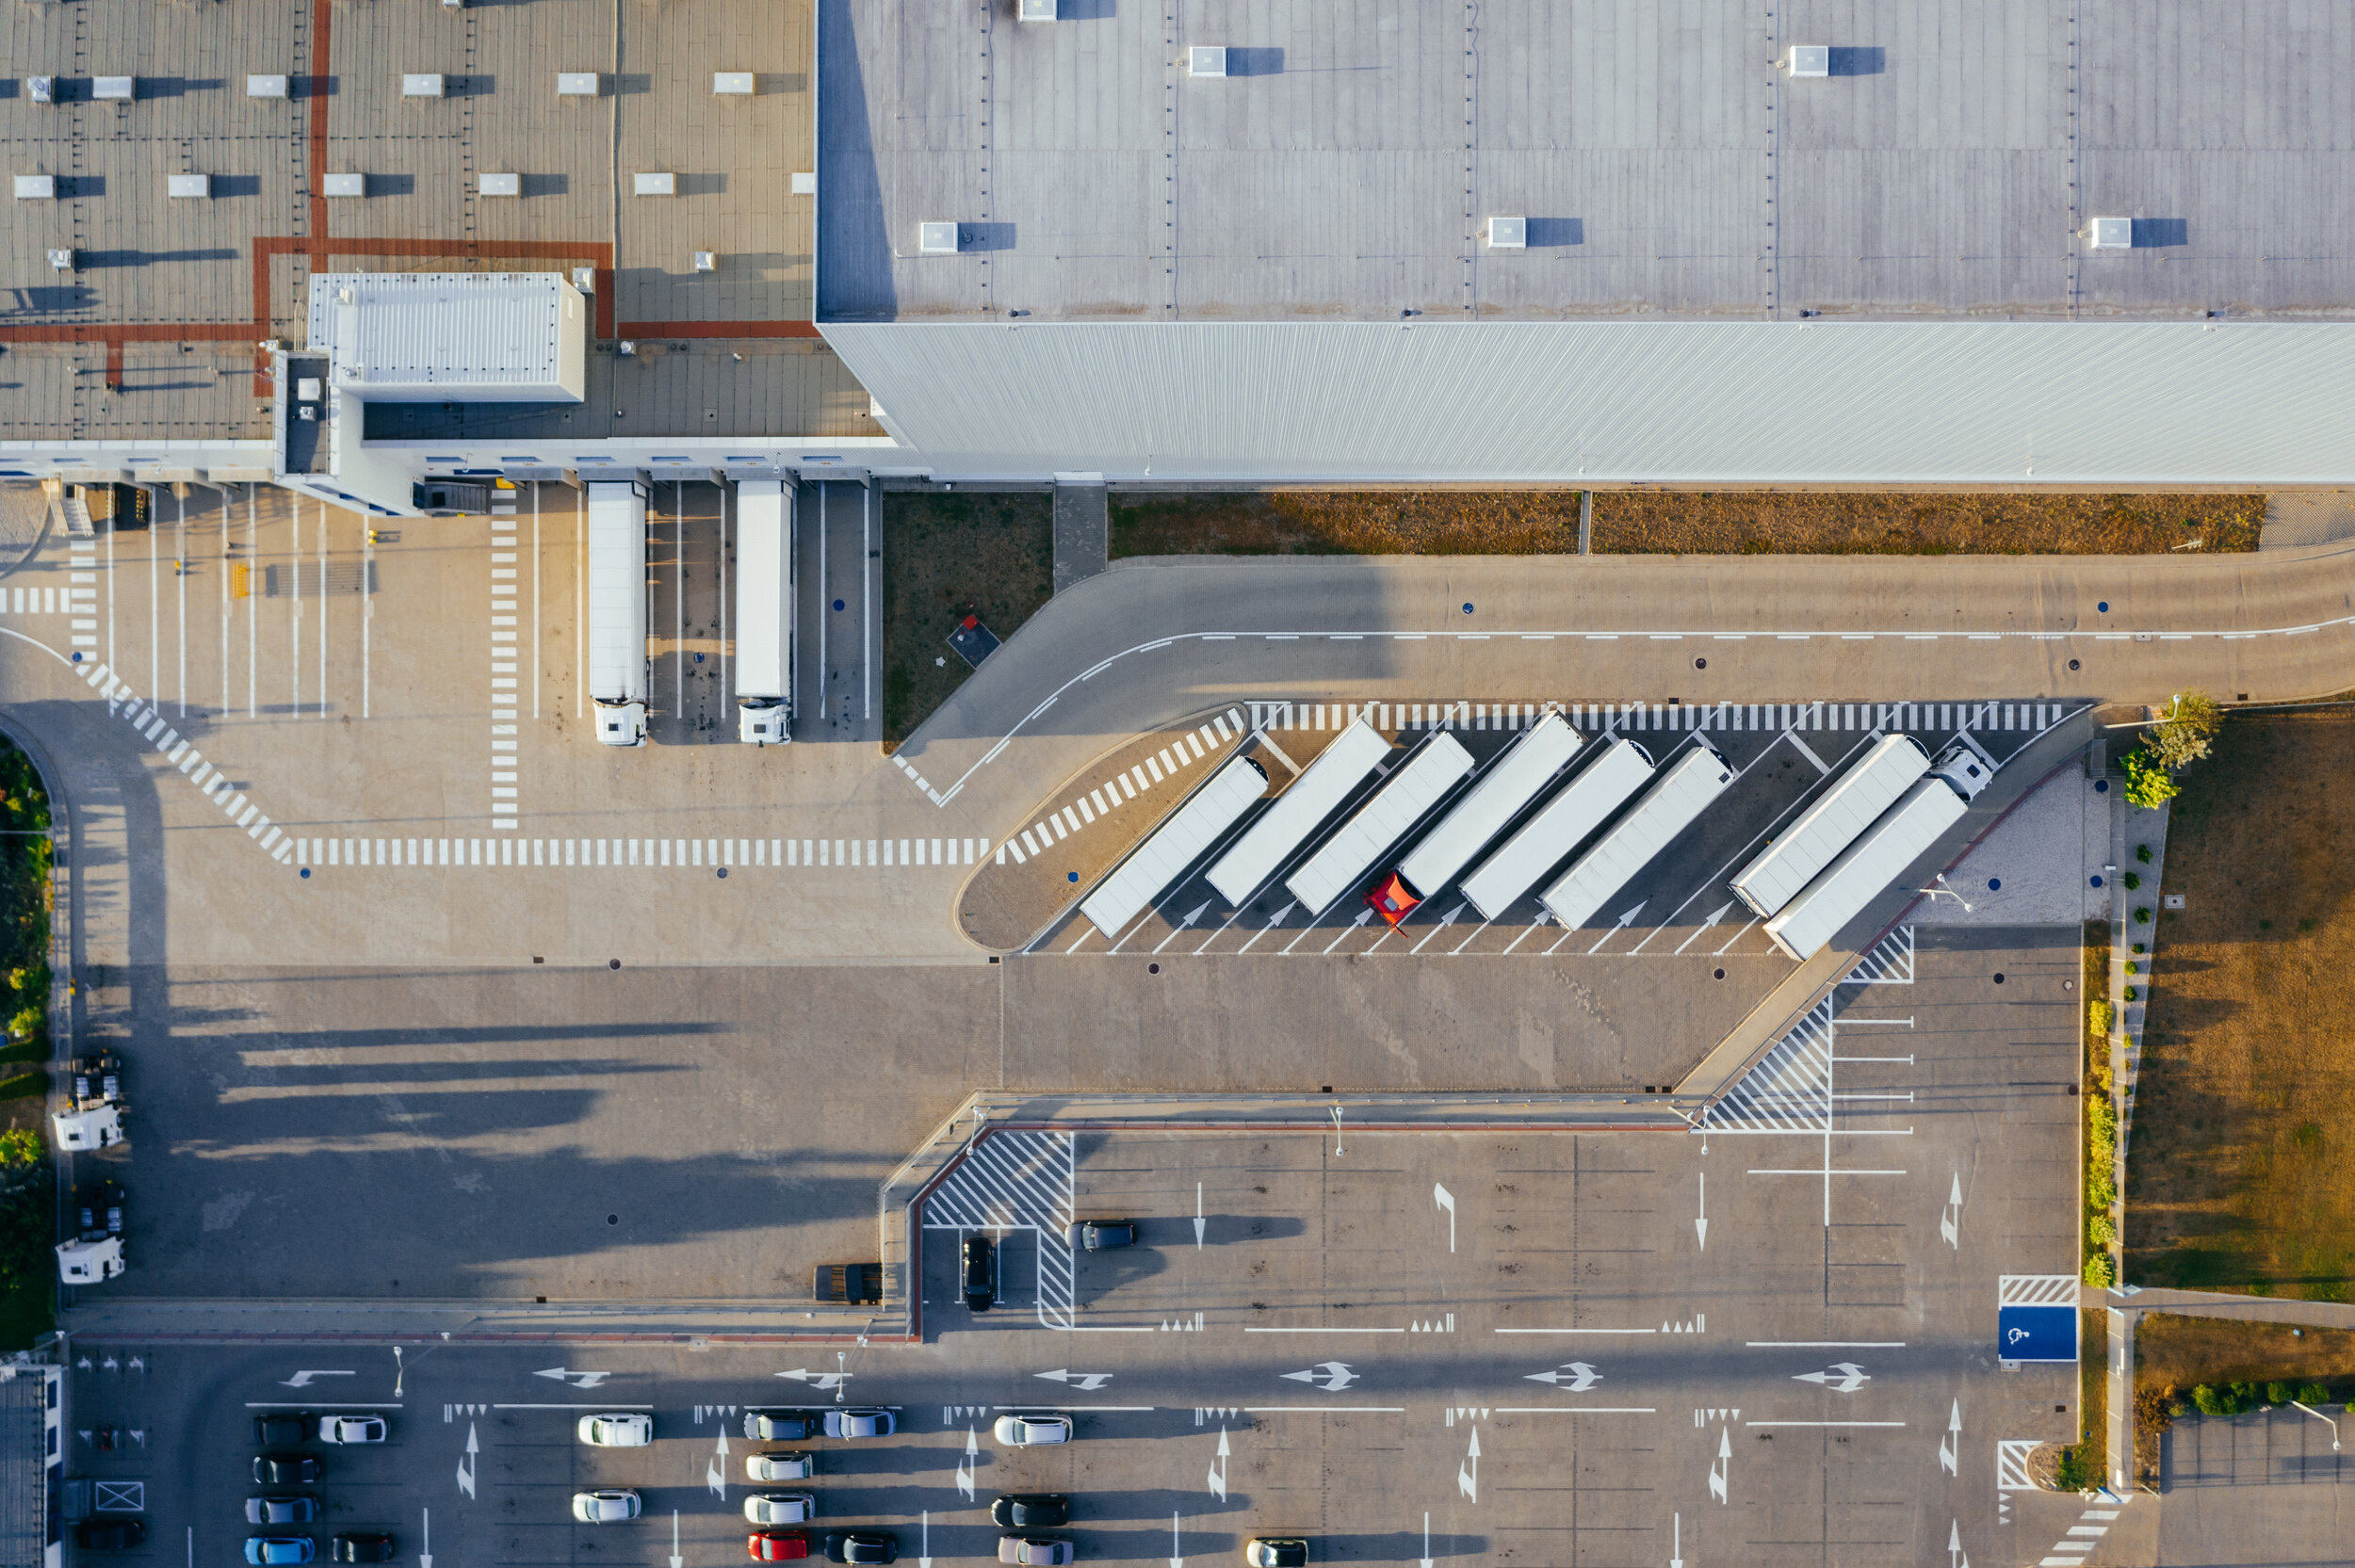 aerial view of semi-truck trailers